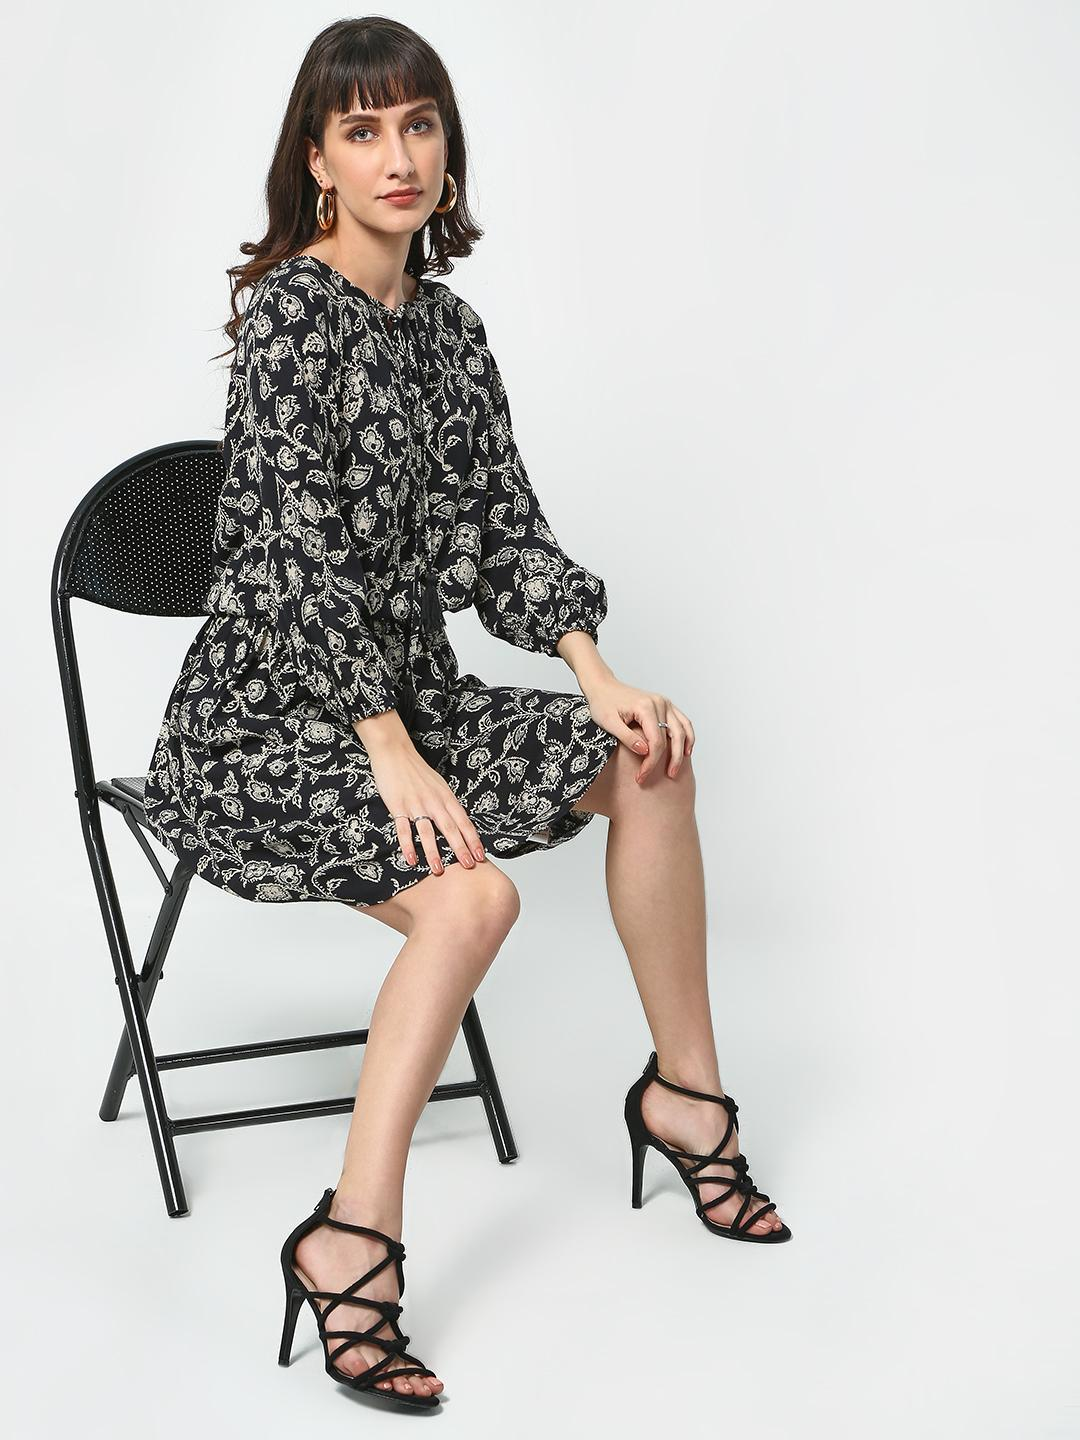 Oxolloxo Black Floral Festive Midi Dress 1